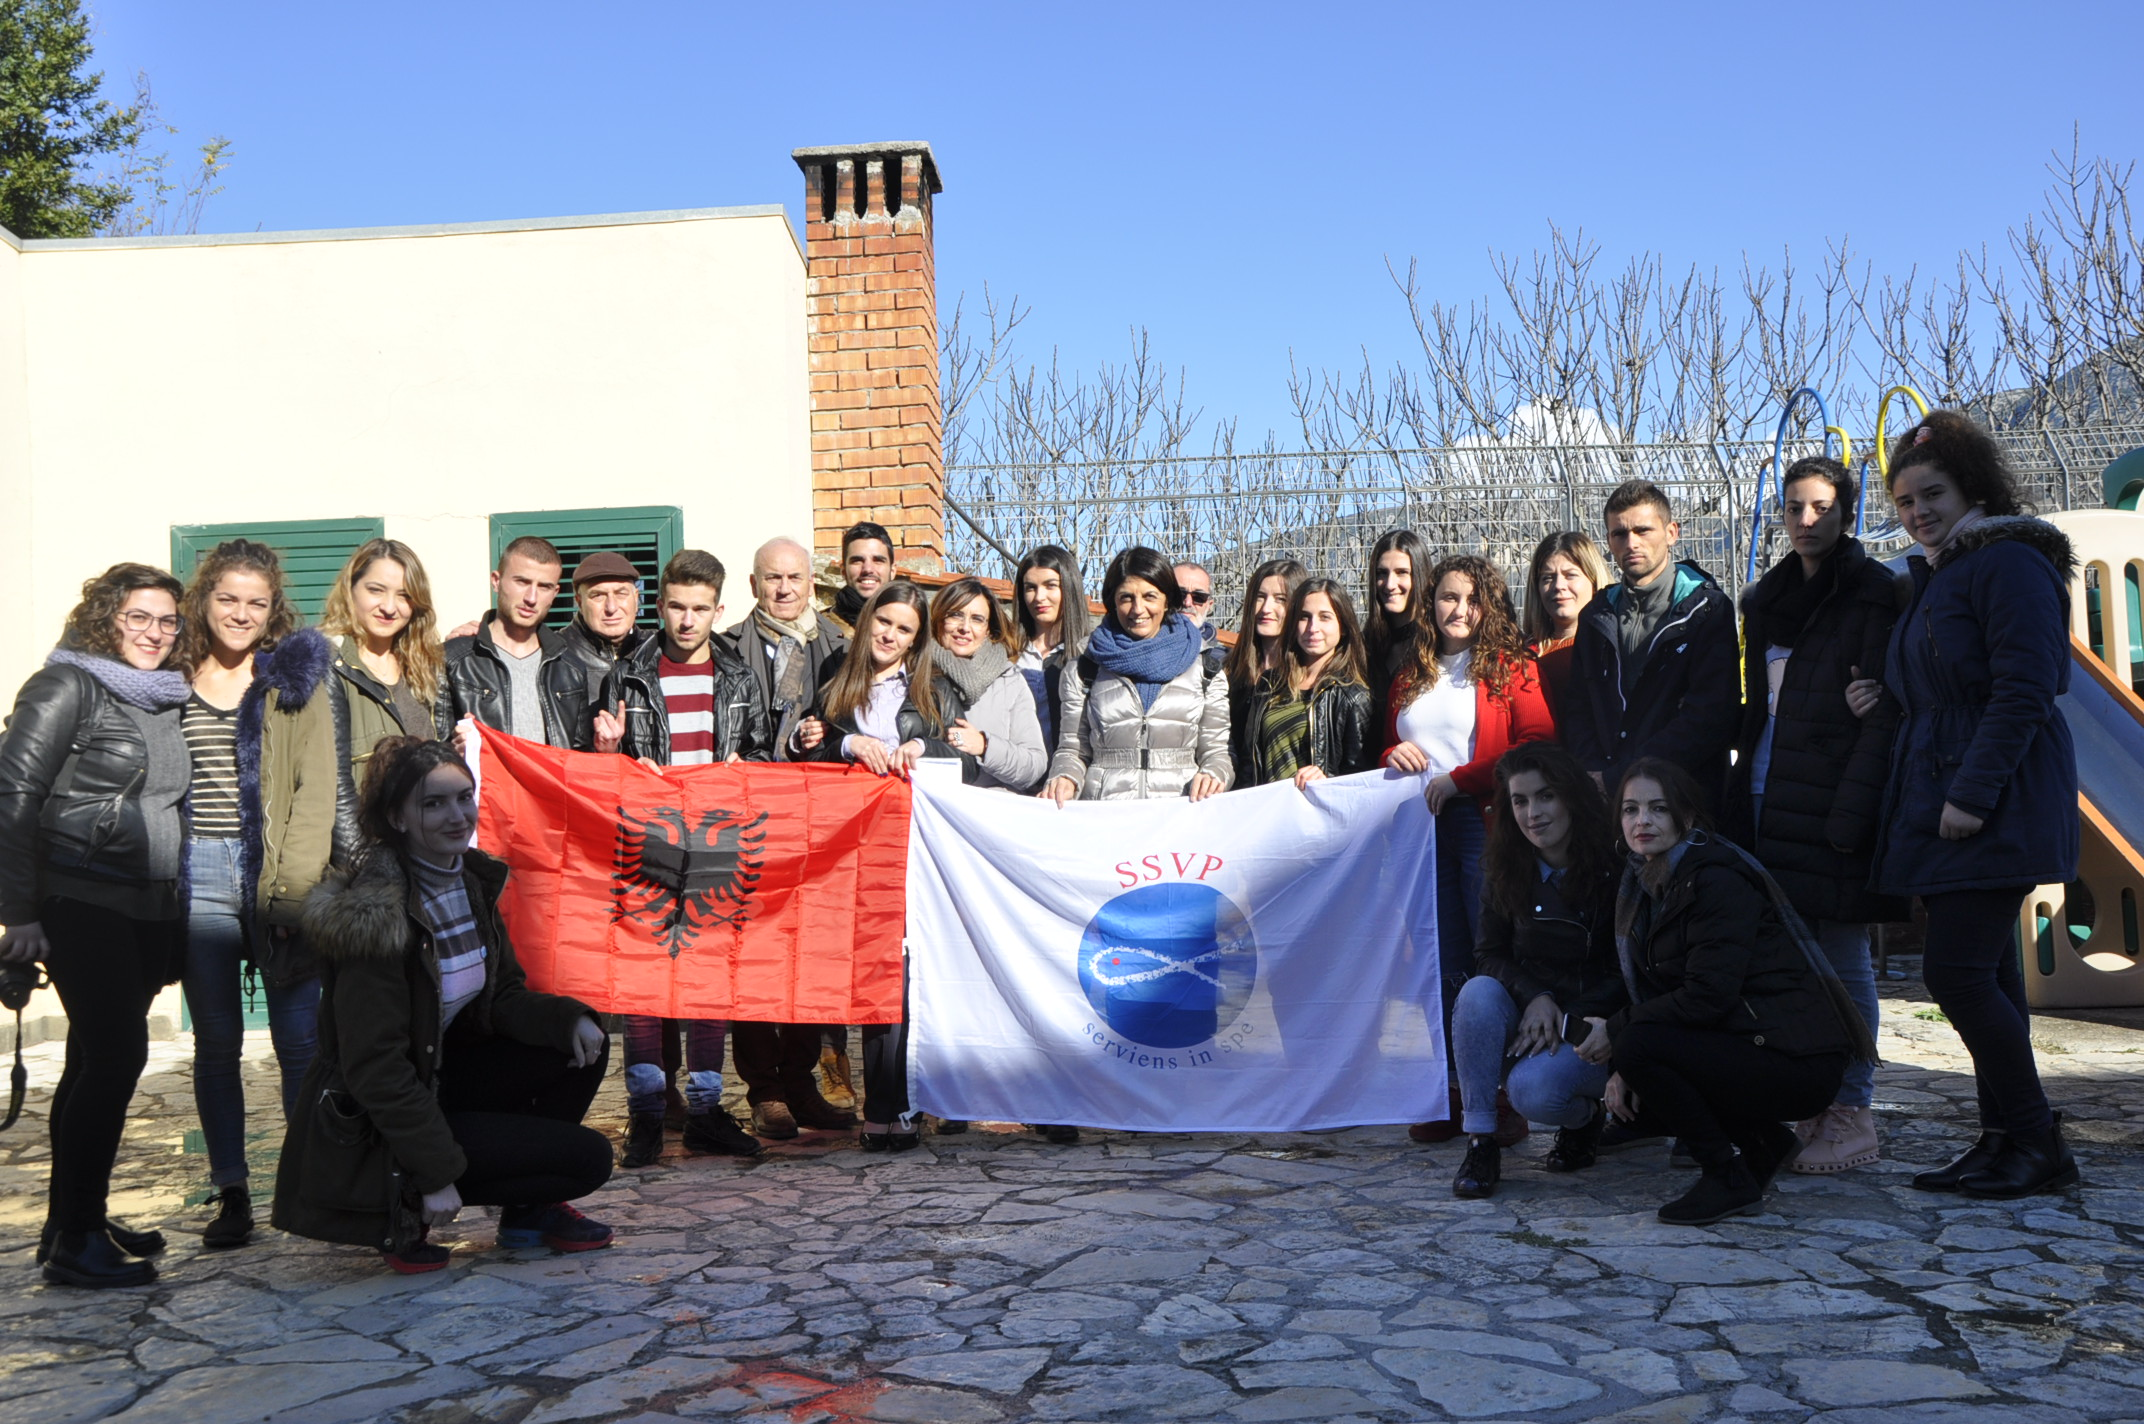 Albania, the new country to incorporate itself to the Society of Saint Vincent de Paul